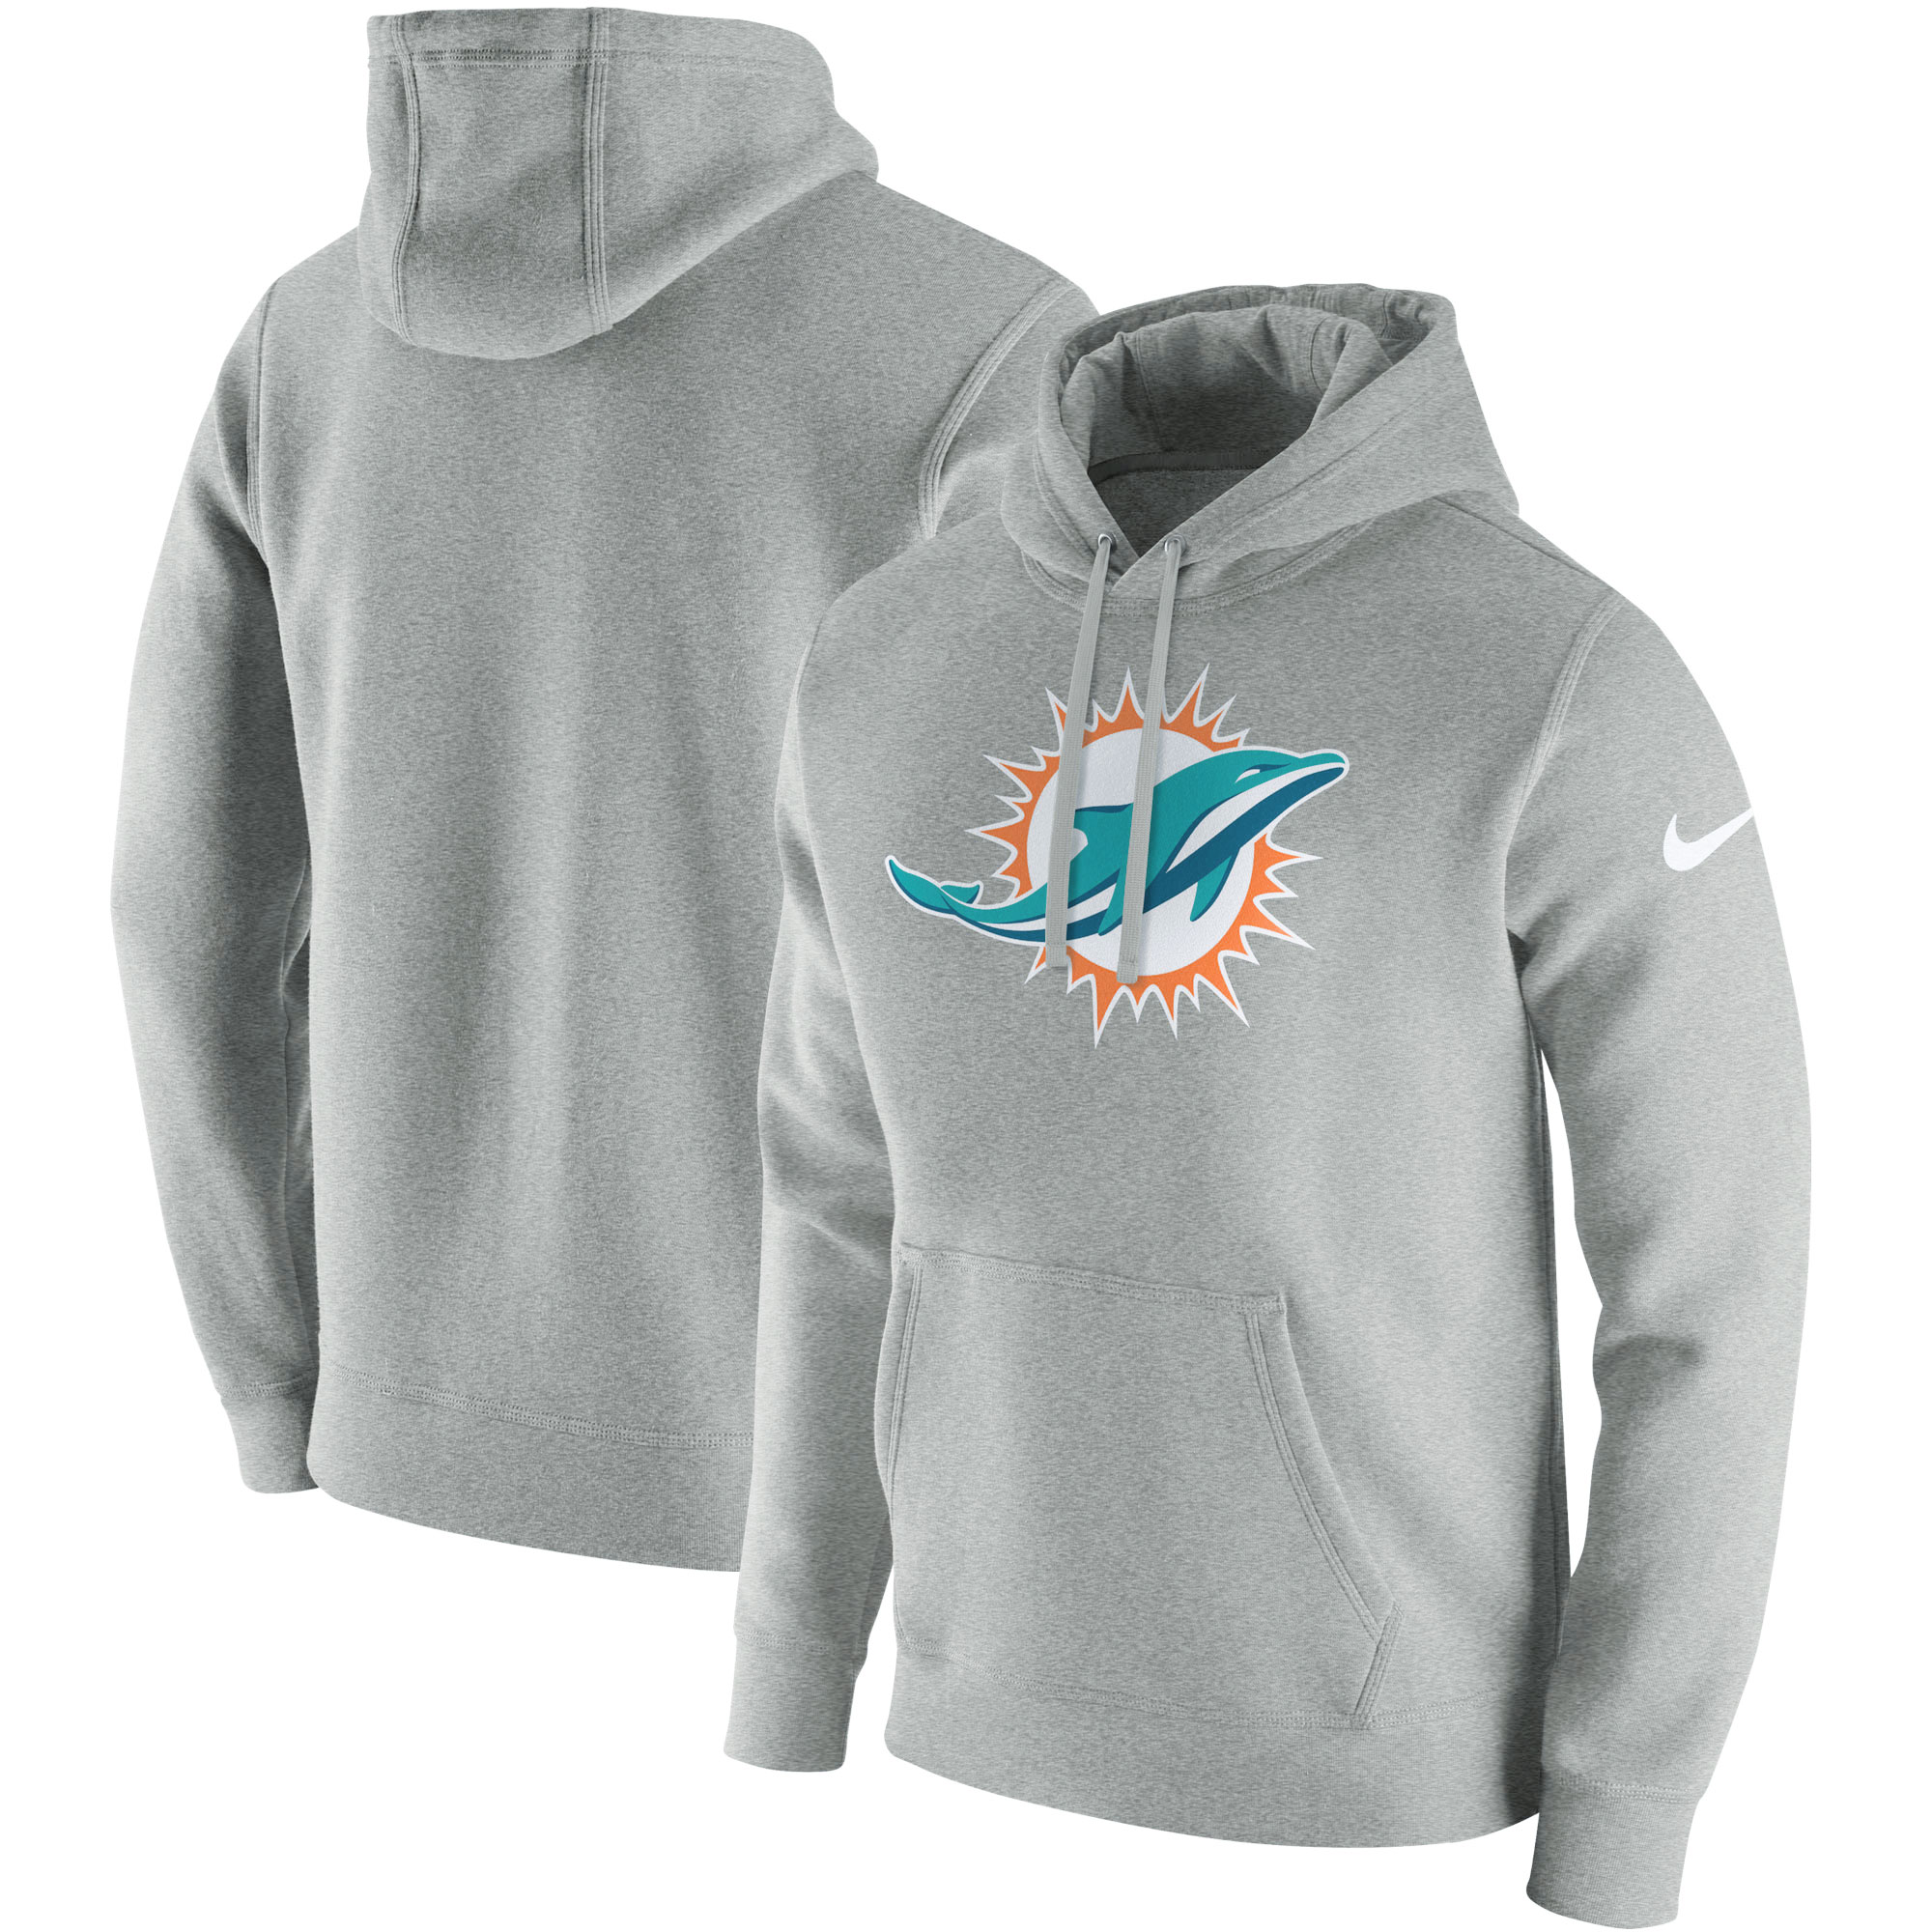 Miami Dolphins Nike Club Fleece Pullover Hoodie - Heathered Gray